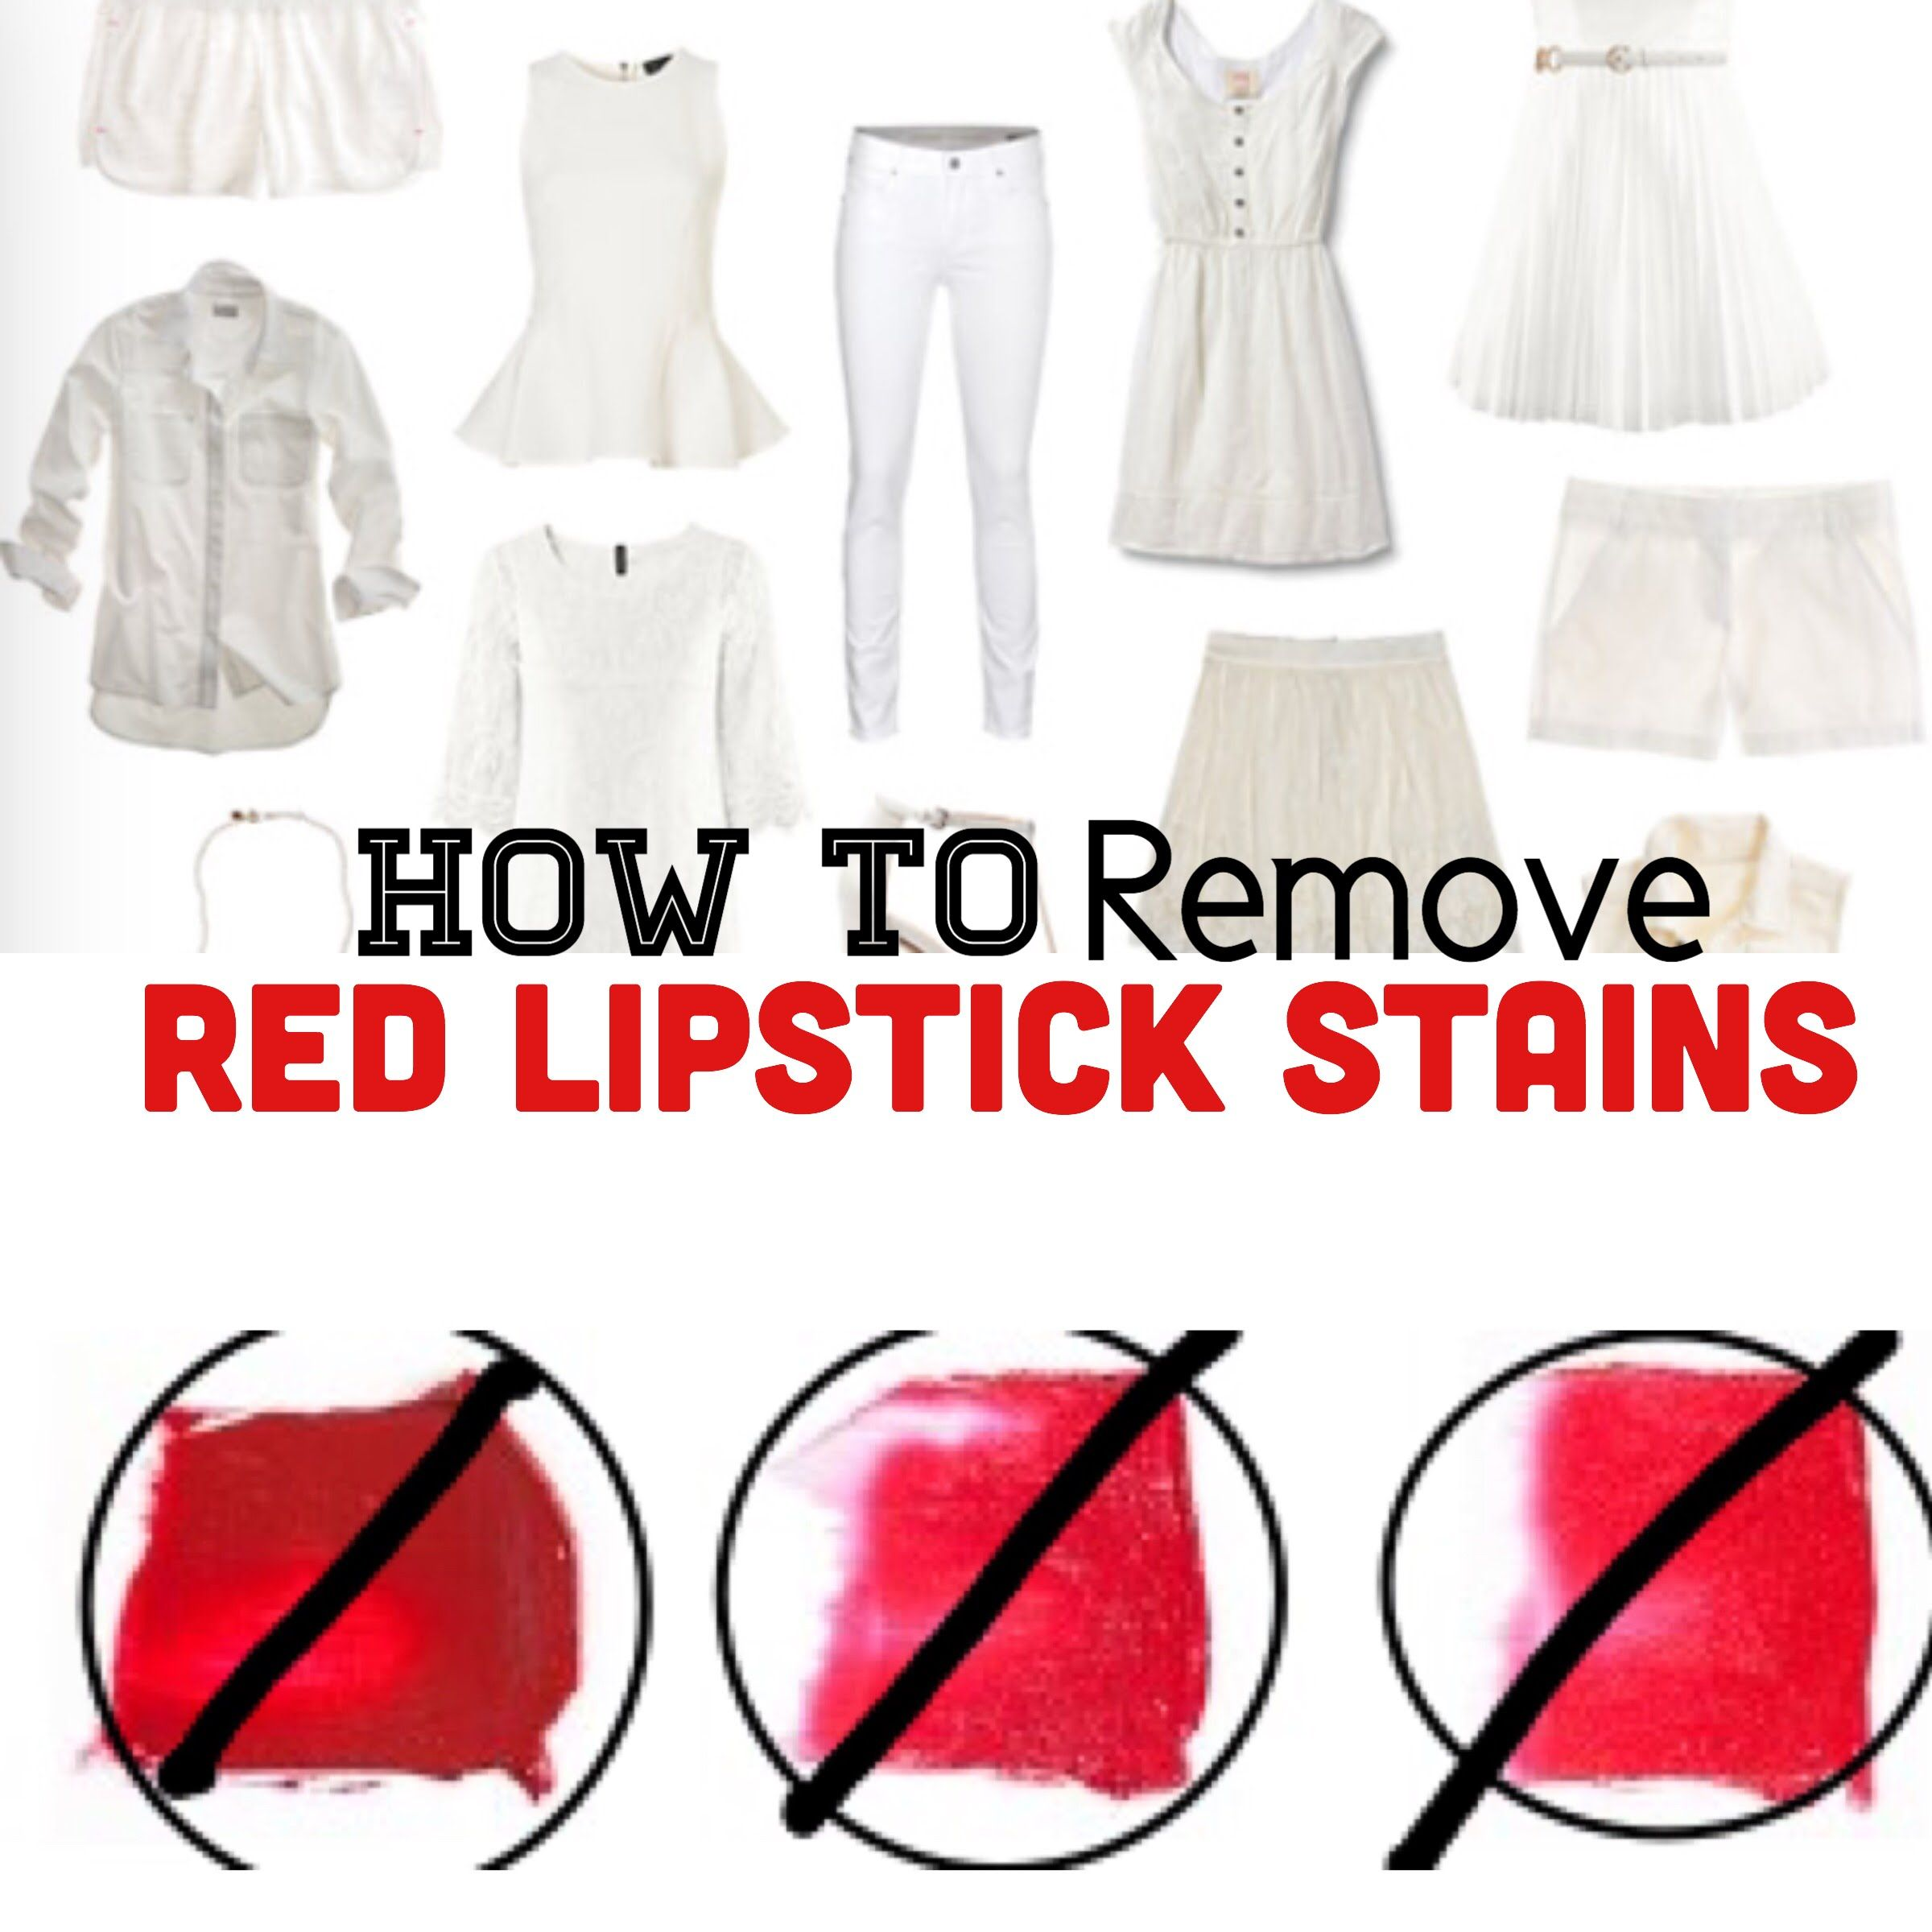 How To Remove Lipstick Stains From Clothing! Lipstick